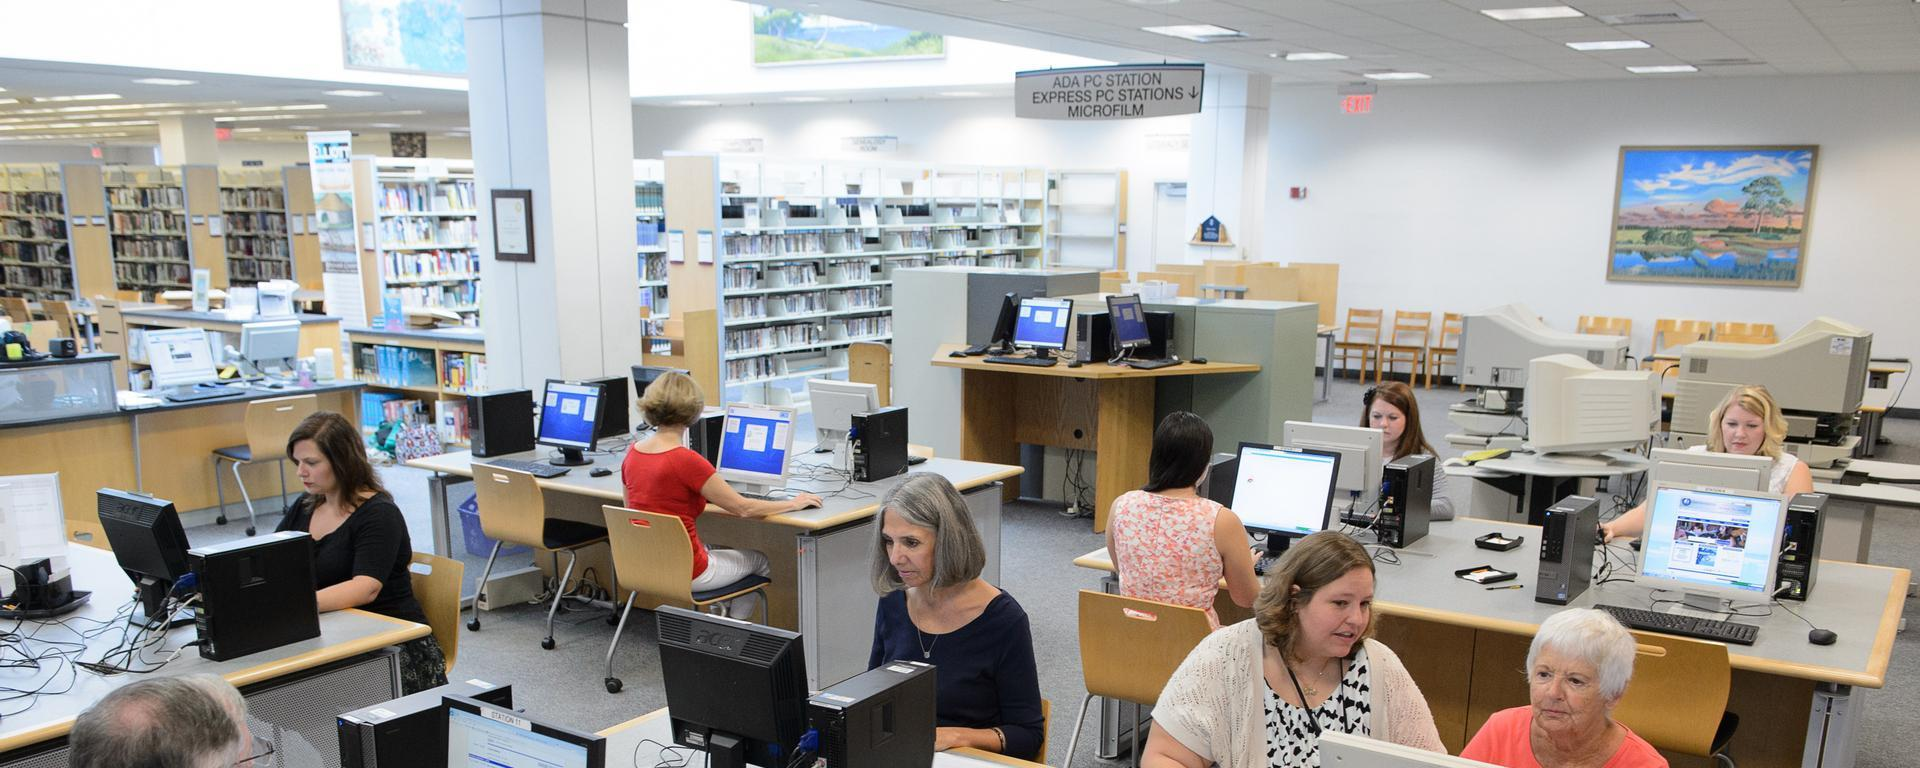 blake library computer area